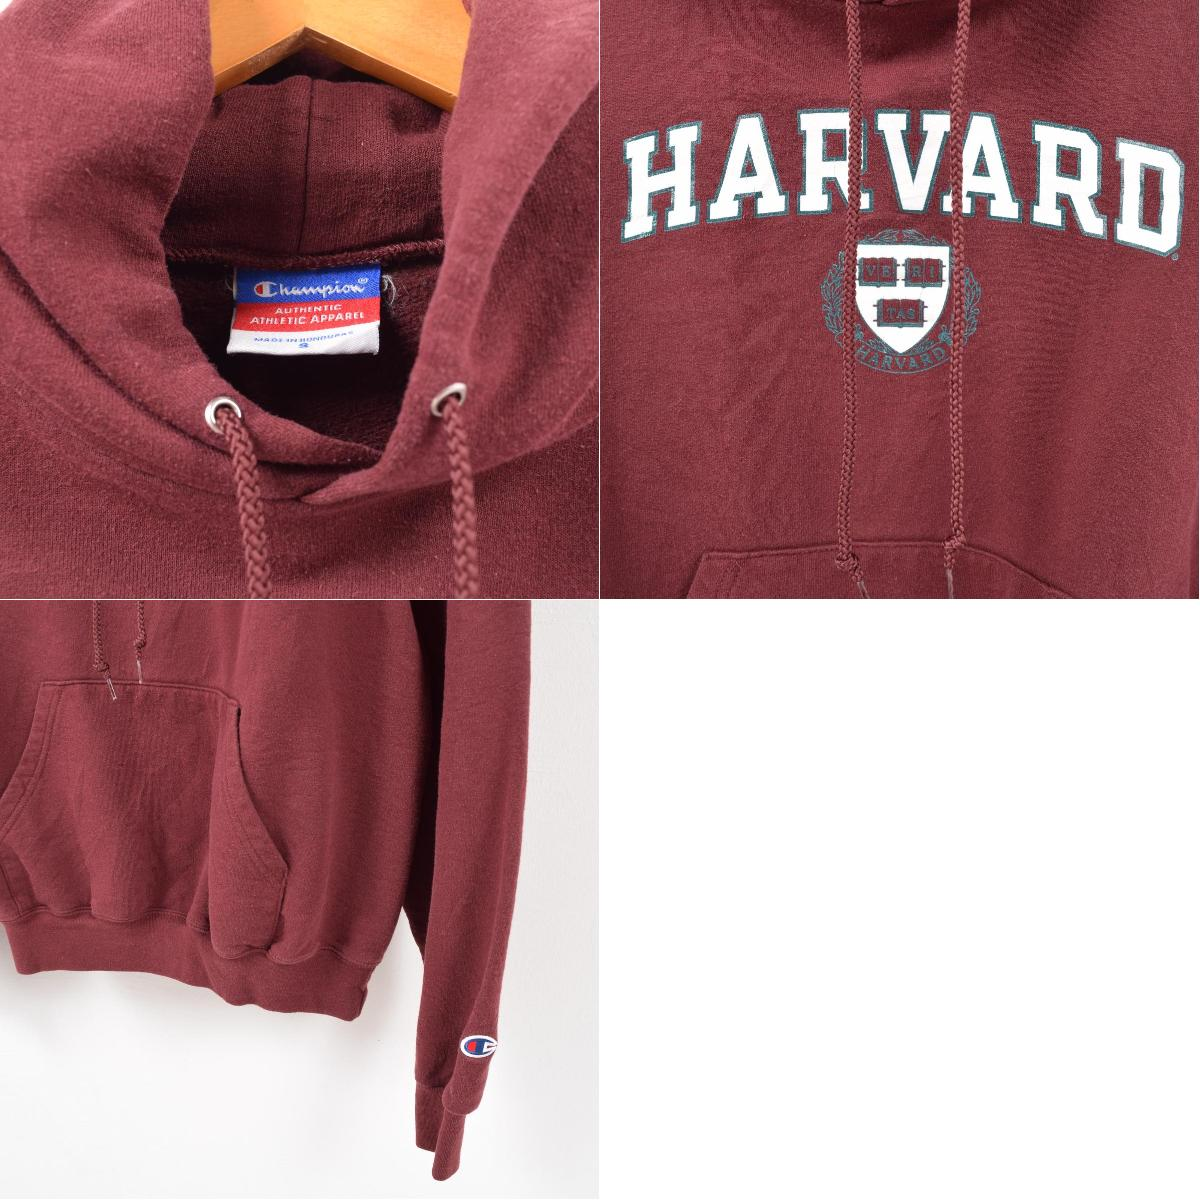 2f0a0d207da6 Champion Champion HARVARD Harvard University college sweat shirt pullover  parka men S  wbc5569